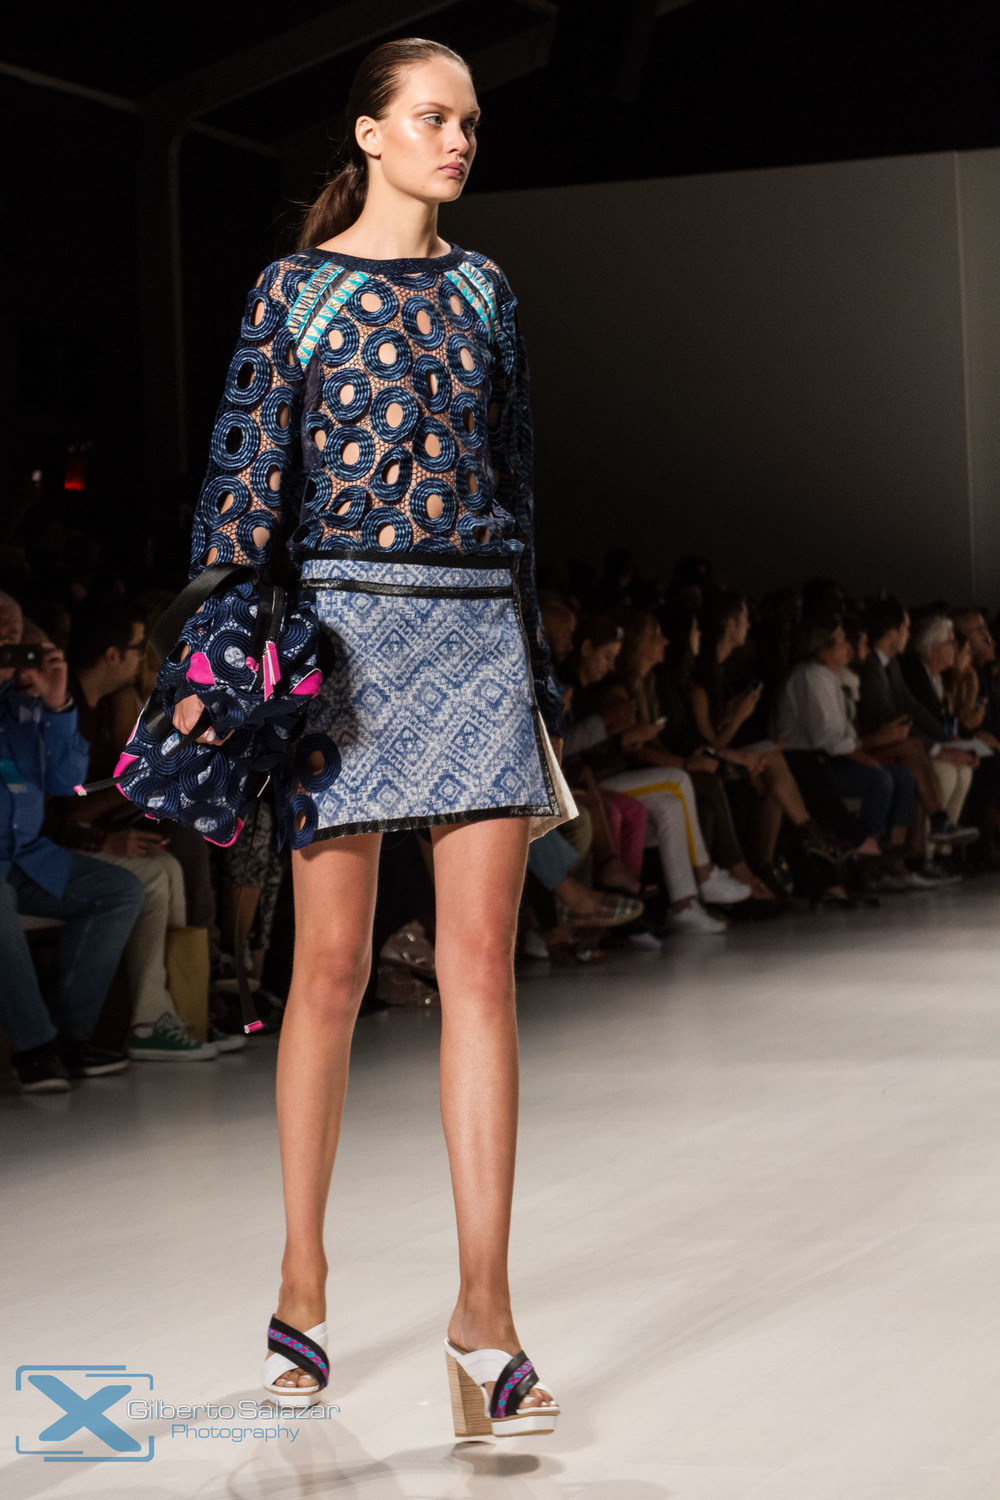 New York Fashion Week 2014 by Gilberto Salazar-25.jpg